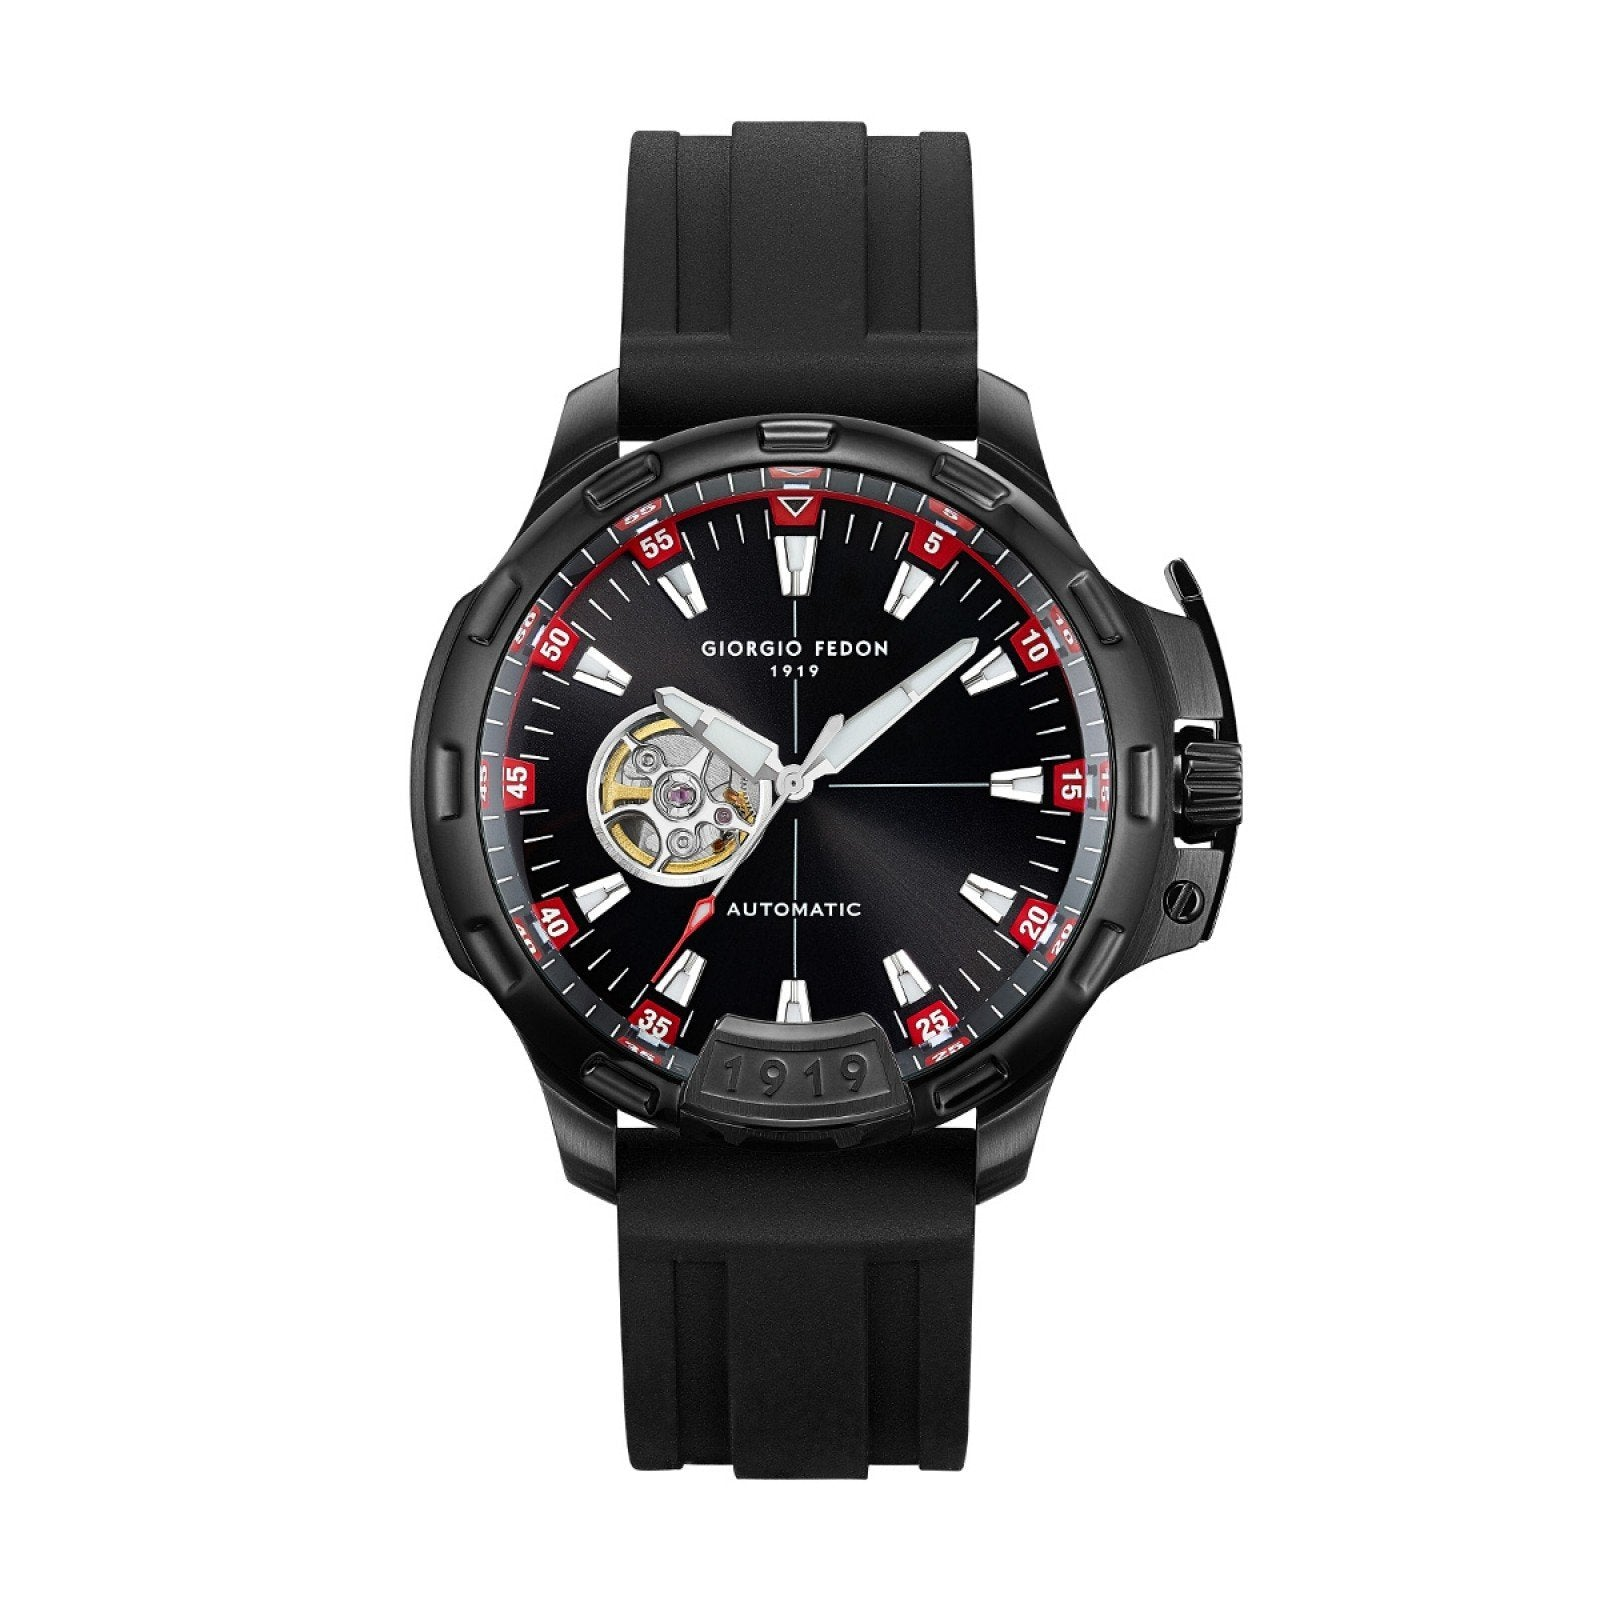 Giorgio Fedon Timeless IX Black PVD - Watches & Crystals